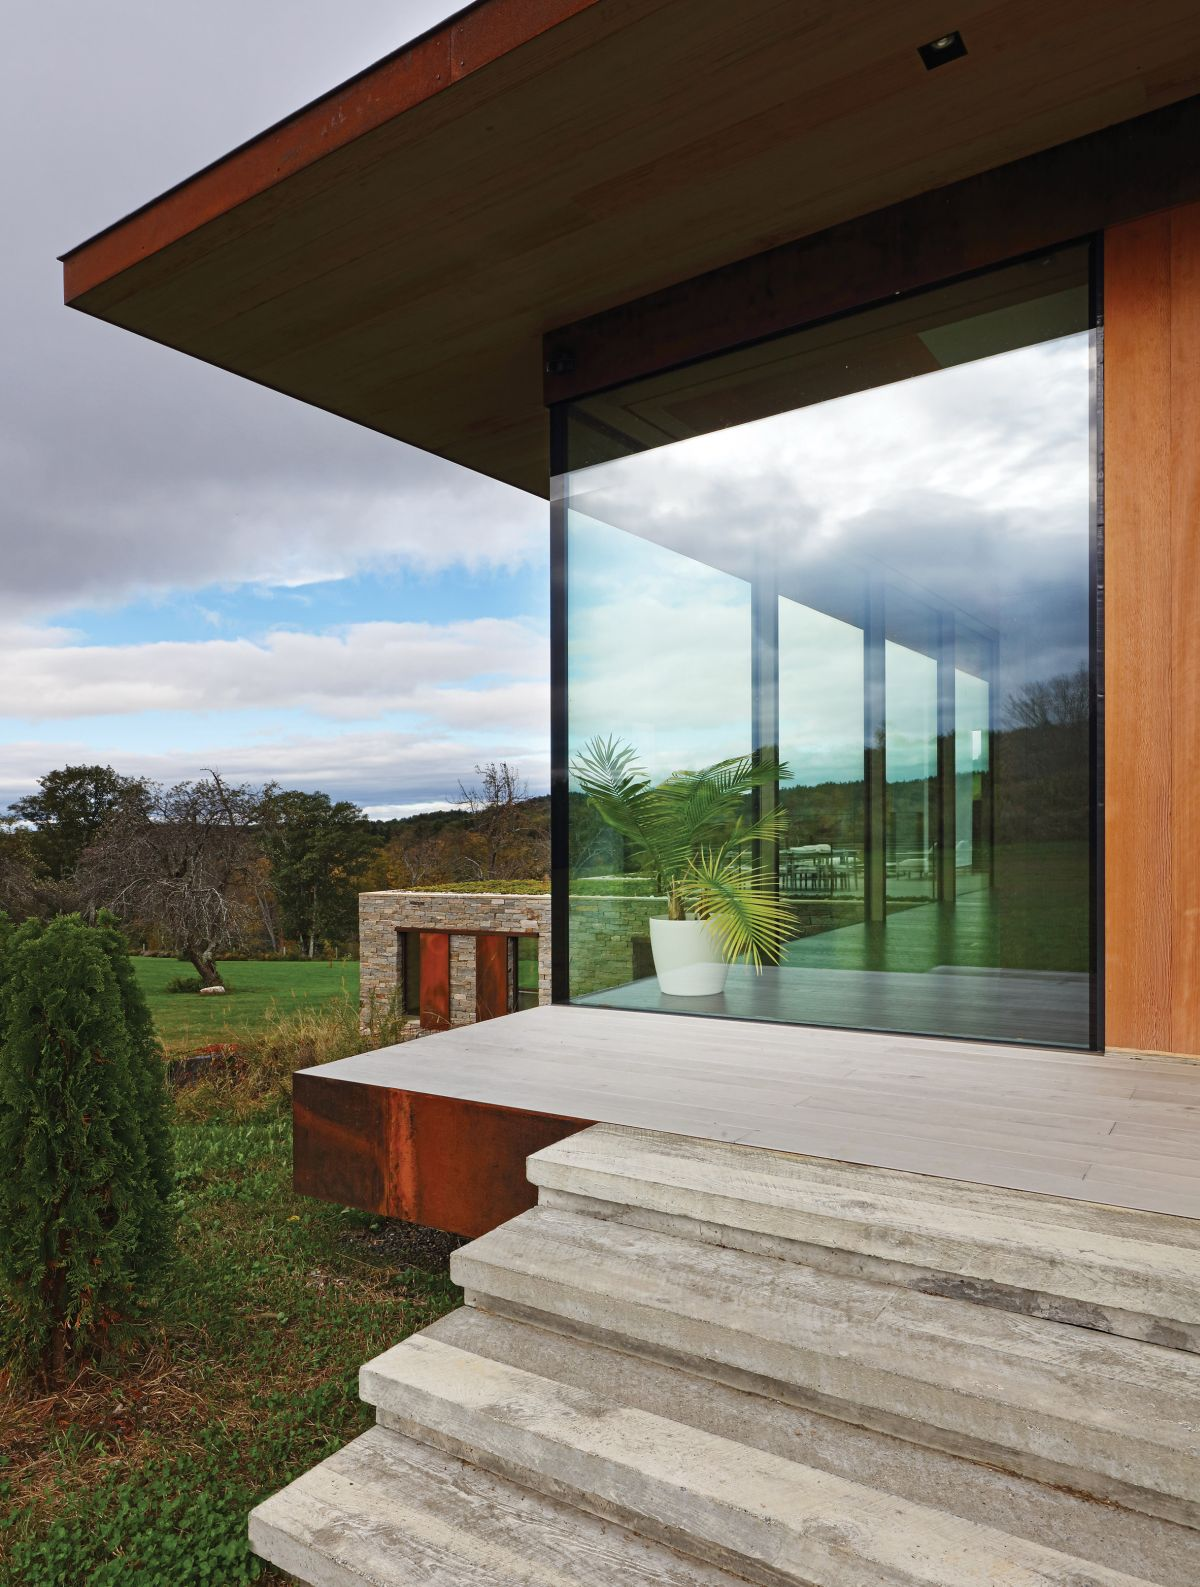 The top floor has glazed walls which frame the marvelous panoramic views and let the outdoors in